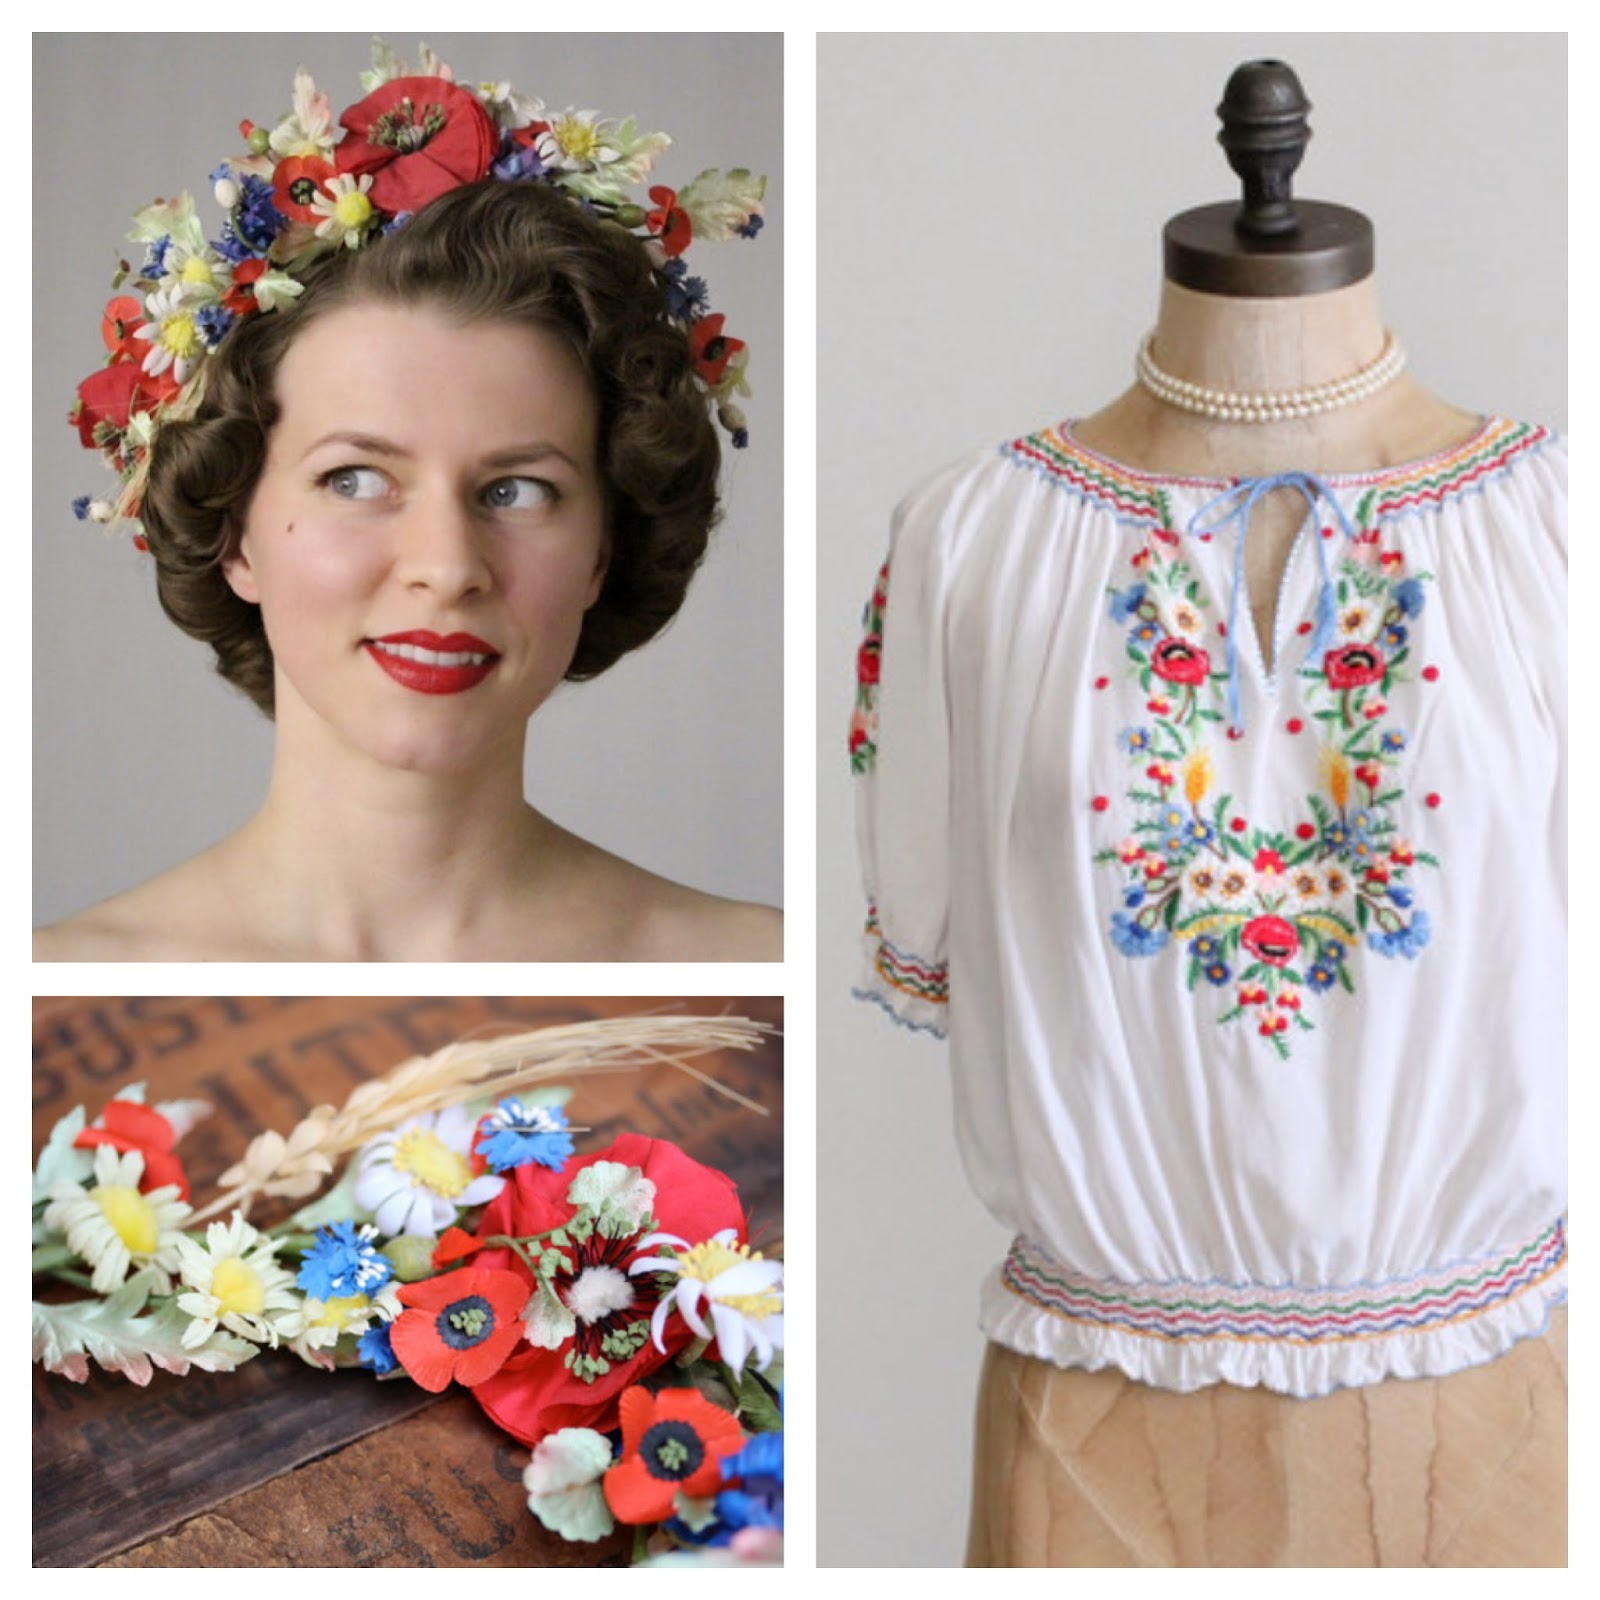 1930s Summer Love #1930s #blouse #peasant #folk #hair #wreath #poppy